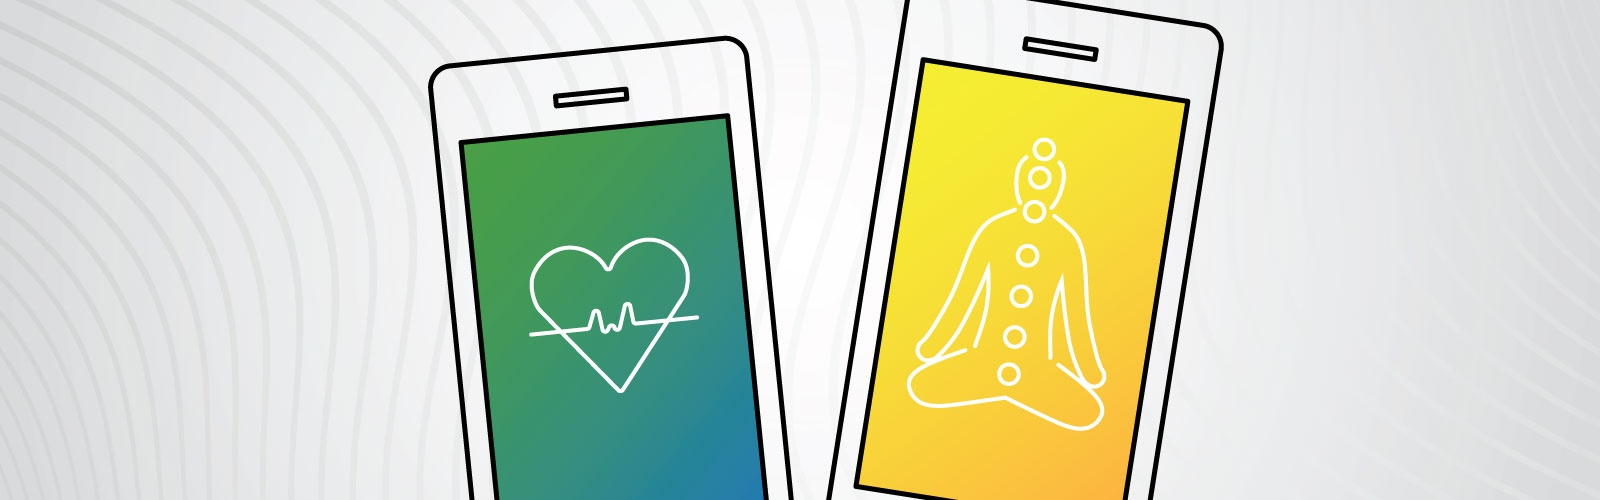 Graphic design illustrating two cellphones. One screen displays a heart with EKG symbols against a green and blue background while the other displays a meditating person with chakra points against a yellow background.